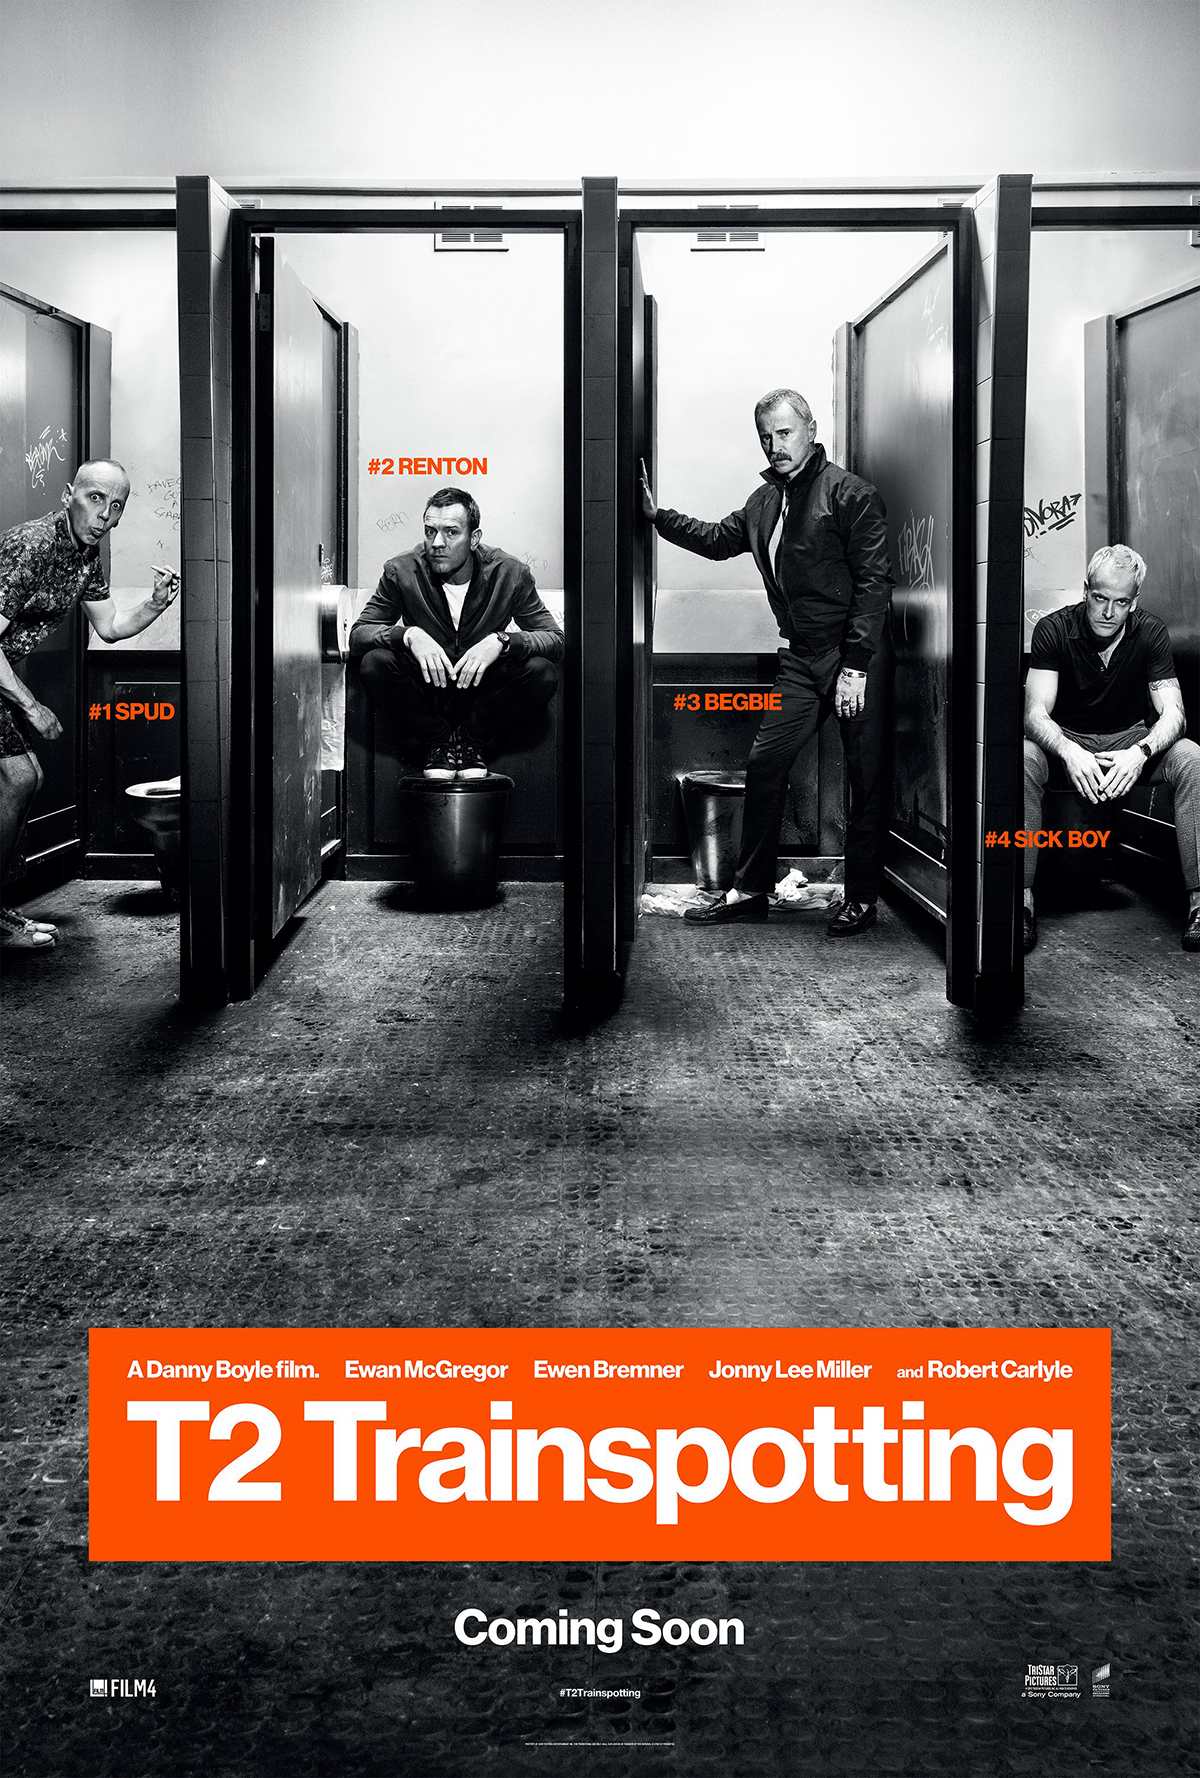 Posters for T2 Trainspotting reference the original 1996 campaign